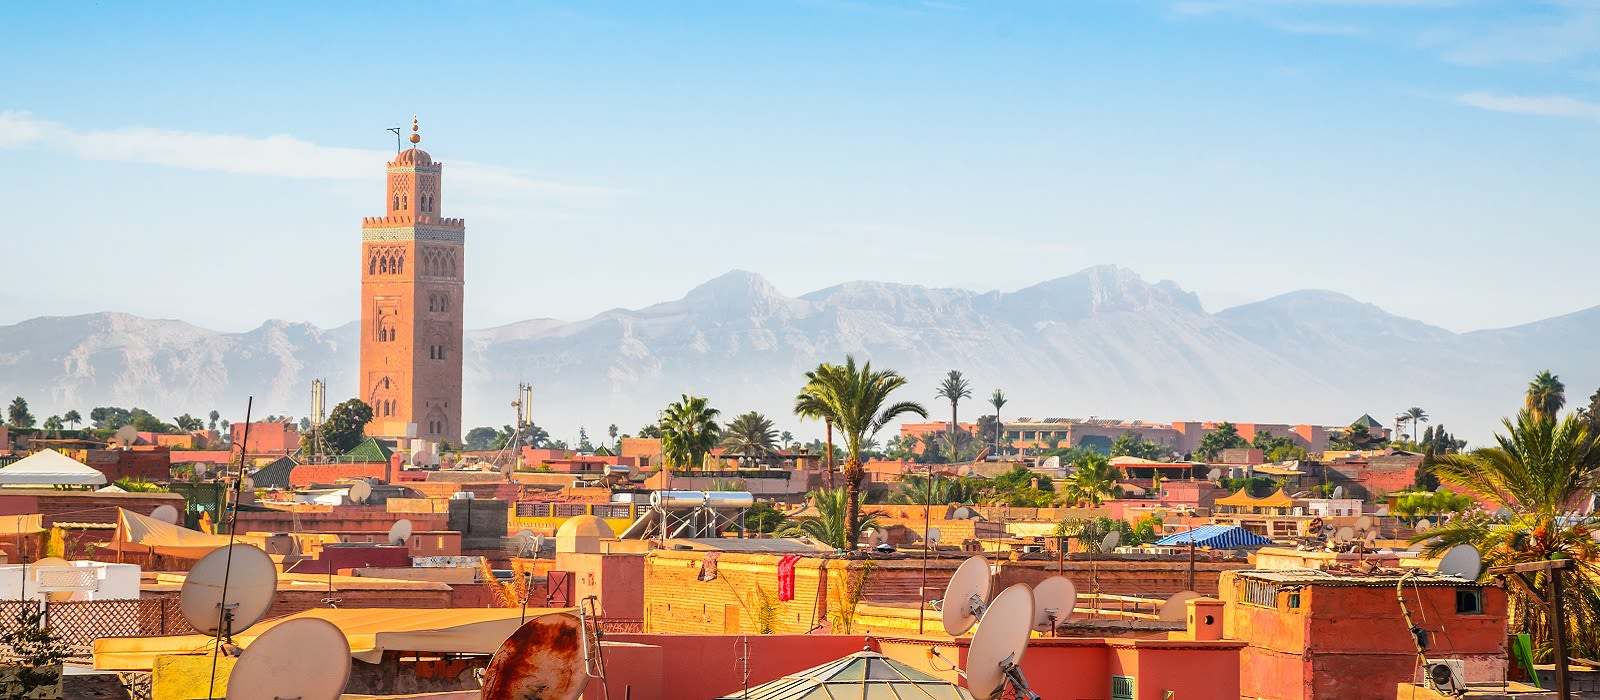 Enchanting Travels Morocco Tours Panoramic view of Marrakech and old medina, Morocco - history of Morocco